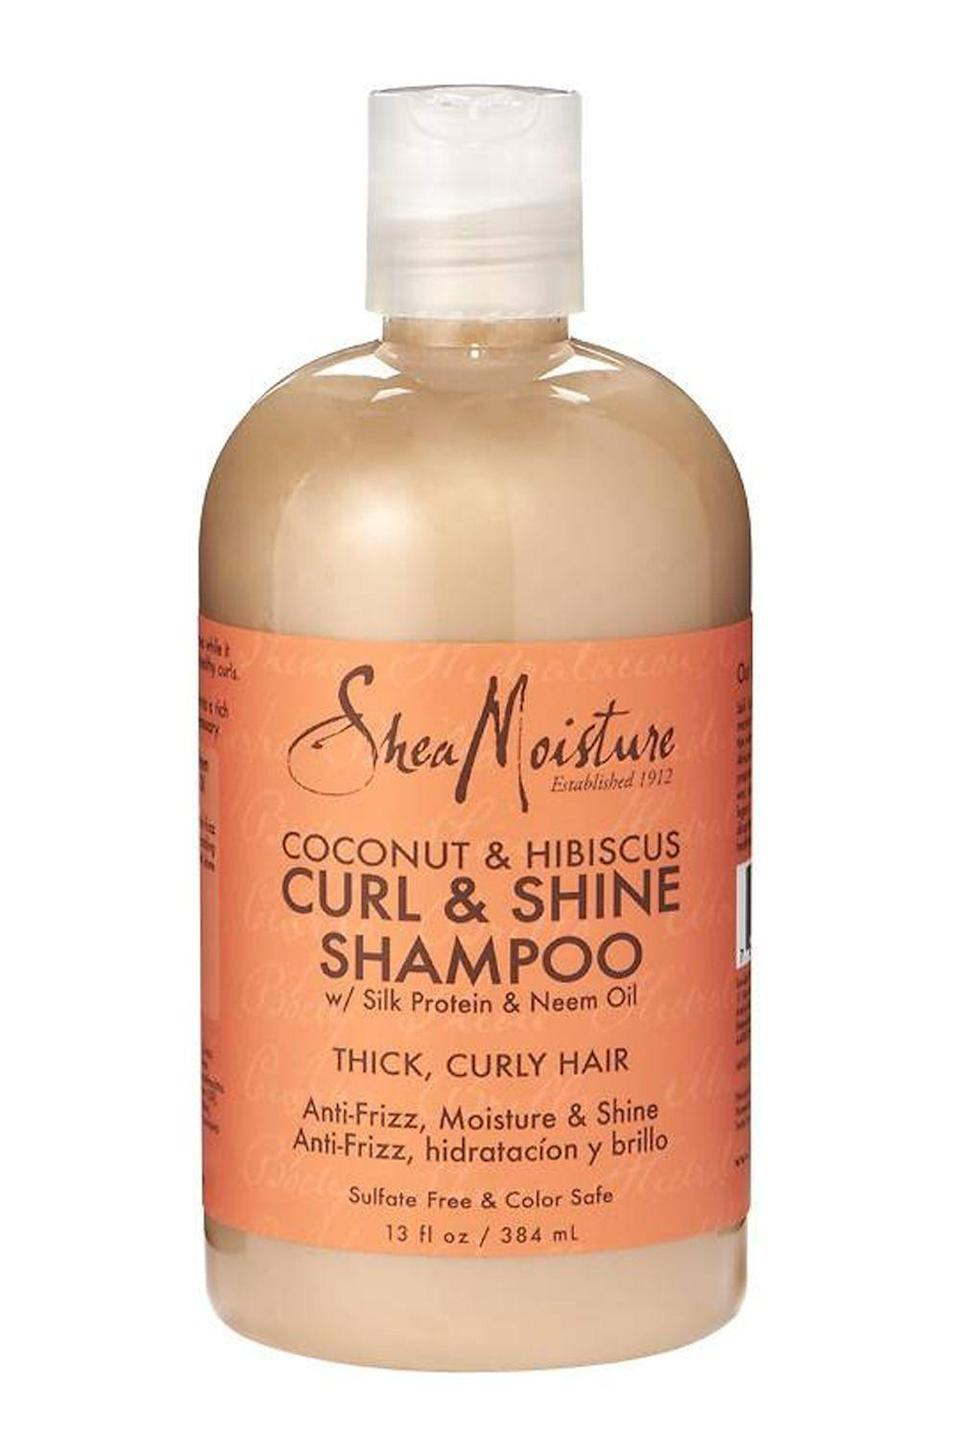 "<p><strong>SheaMoisture</strong></p><p>ulta.com</p><p><strong>$11.49</strong></p><p><a href=""https://go.redirectingat.com?id=74968X1596630&url=https%3A%2F%2Fwww.ulta.com%2Fcoconut-hibiscus-curl-shine-shampoo%3FproductId%3DxlsImpprod6390355&sref=https%3A%2F%2Fwww.cosmopolitan.com%2Fstyle-beauty%2Fbeauty%2Fg22740377%2Forganic-shampoo%2F"" rel=""nofollow noopener"" target=""_blank"" data-ylk=""slk:Shop Now"" class=""link rapid-noclick-resp"">Shop Now</a></p><p><a href=""https://www.cosmopolitan.com/style-beauty/beauty/news/a34577/curly-hair-hacks/"" rel=""nofollow noopener"" target=""_blank"" data-ylk=""slk:Curly hair"" class=""link rapid-noclick-resp"">Curly hair</a> types will love the coconut oil, shea butter, and hibiscus extracts in this organic shampoo from Shea Moisture. It's free from sulfates (the enemy of curls and coils everywhere) but packed with a <strong>yummy, tropical scent that leaves your hair smelling amazing</strong> for hours.</p>"